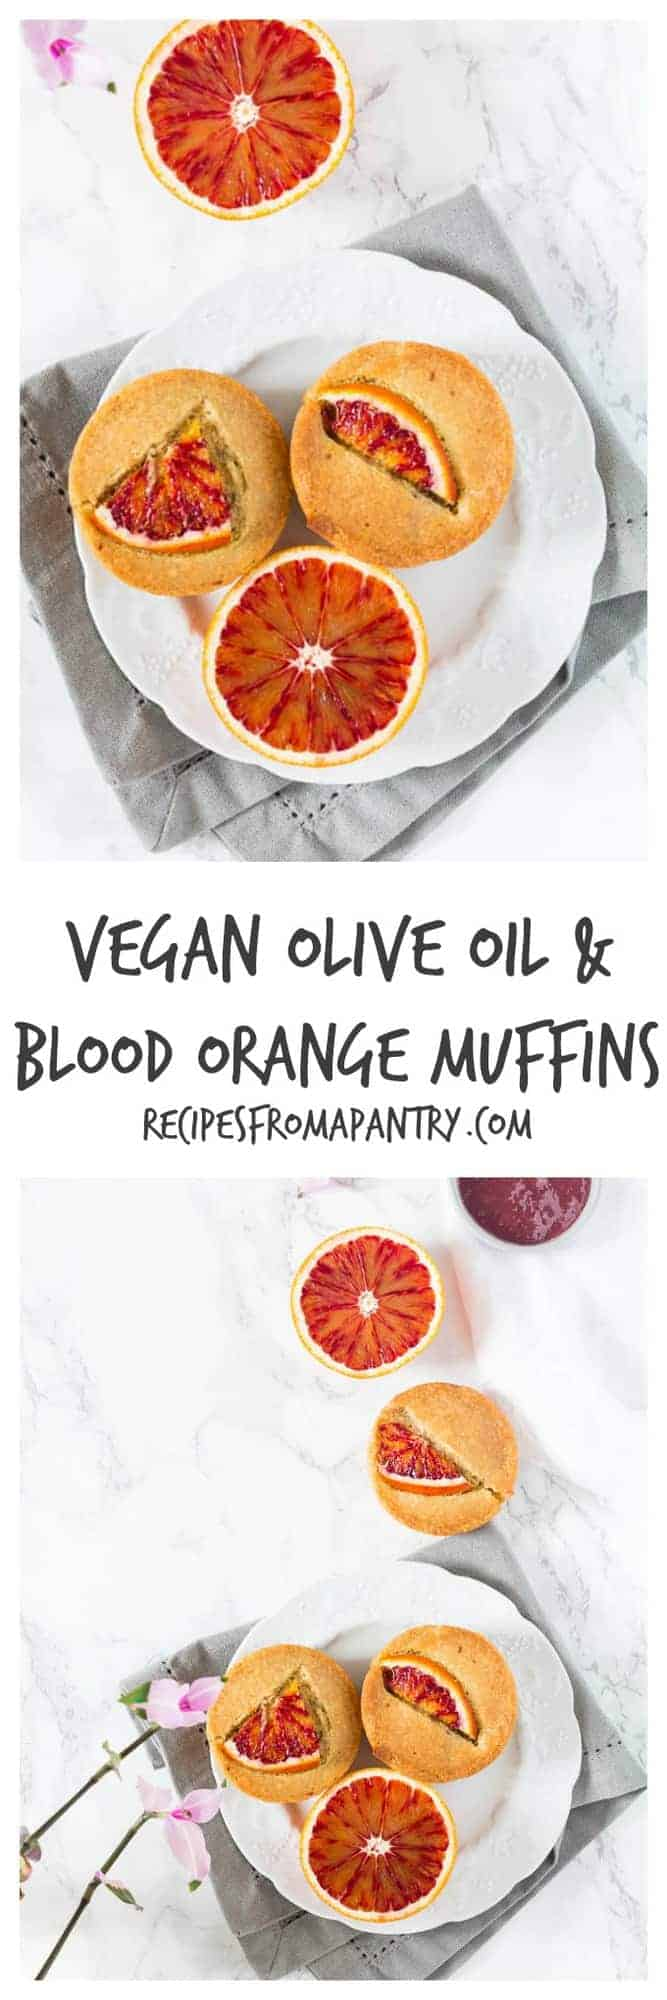 Vegan Olive Oil And Blood Orange Muffins   Recipes From A Pantry